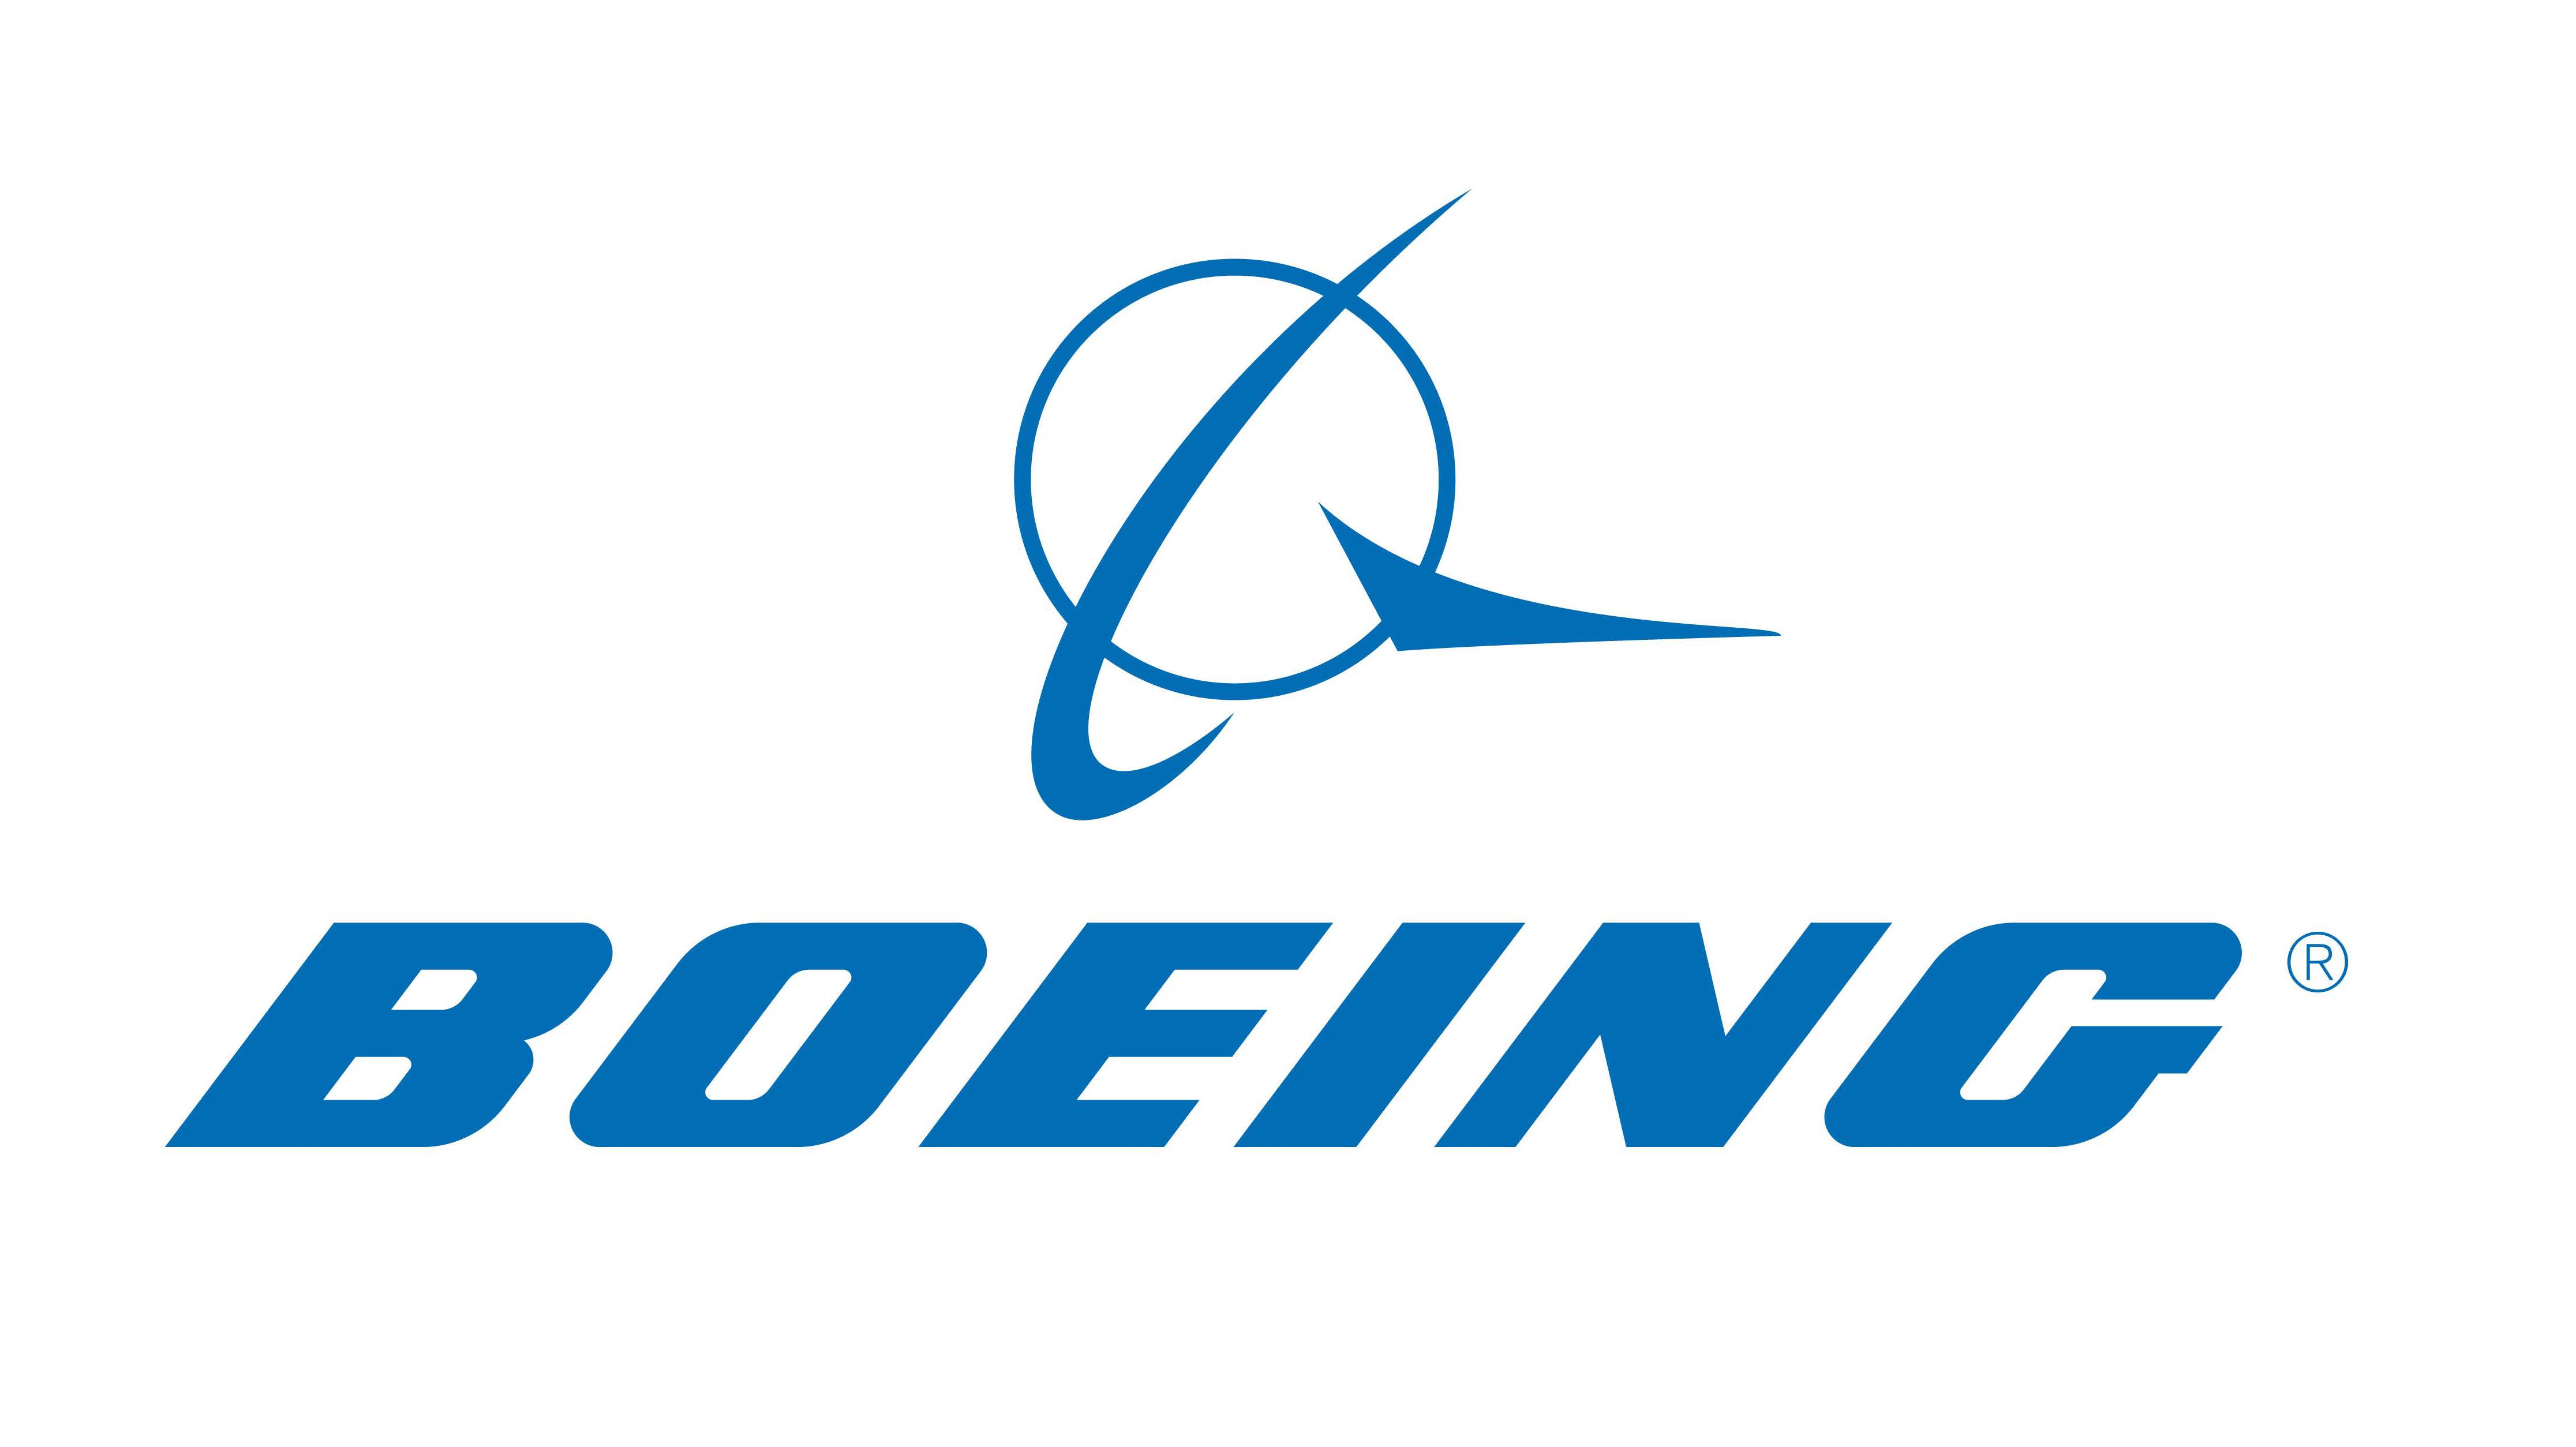 Boeing | Additive4 customer